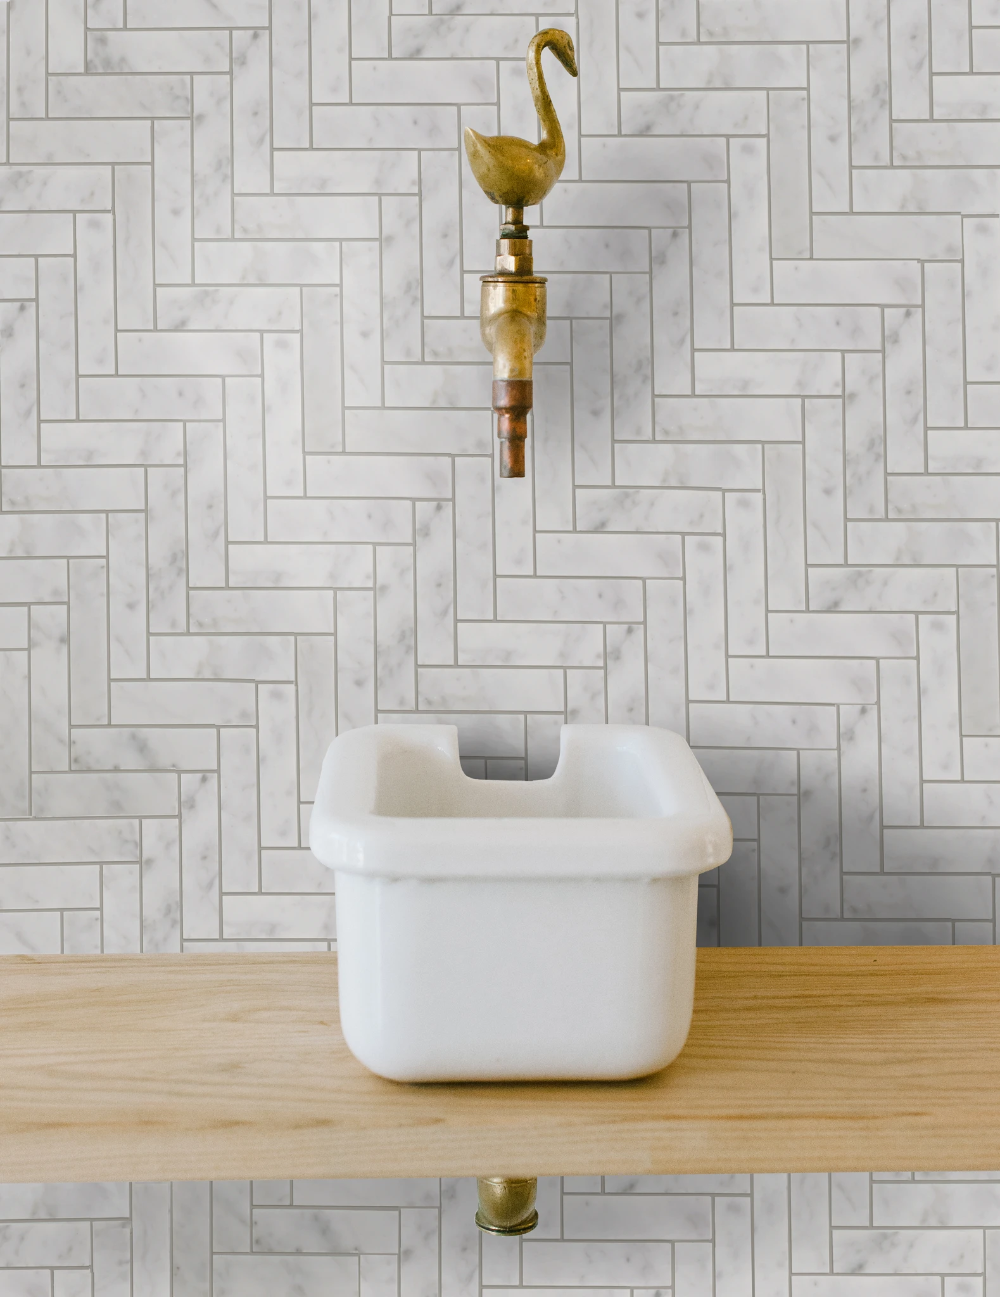 Cle Basics Carrara Herringbone Tiles 1 X3 3 4 X3 8 Herringbone Tile Herringbone Tile Floors Marble Herringbone Tile